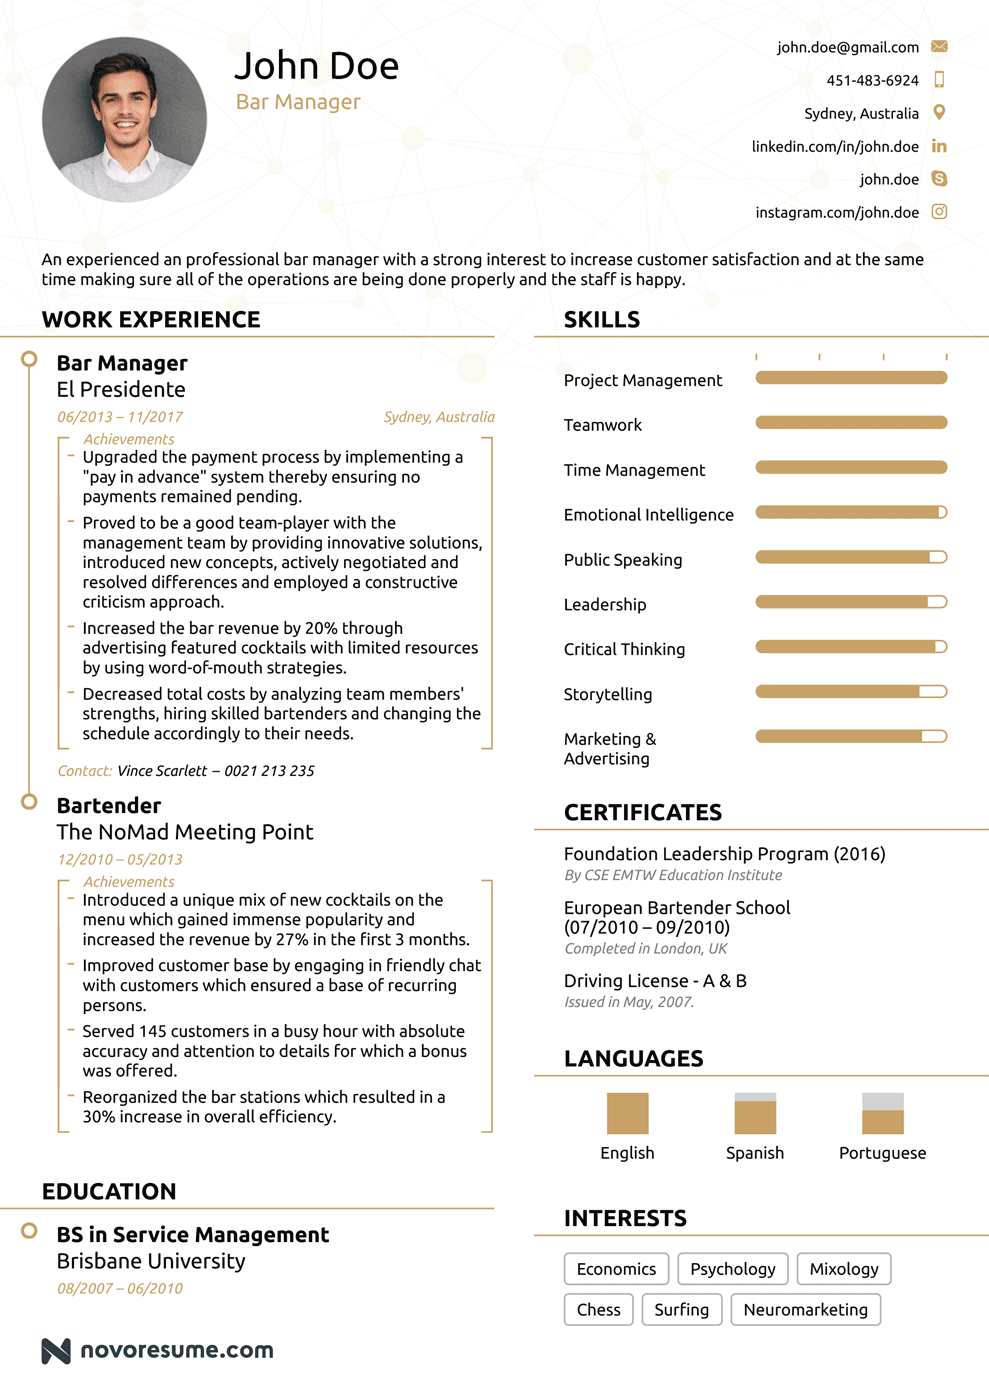 bar restaurant manager resume example update yours for 2018